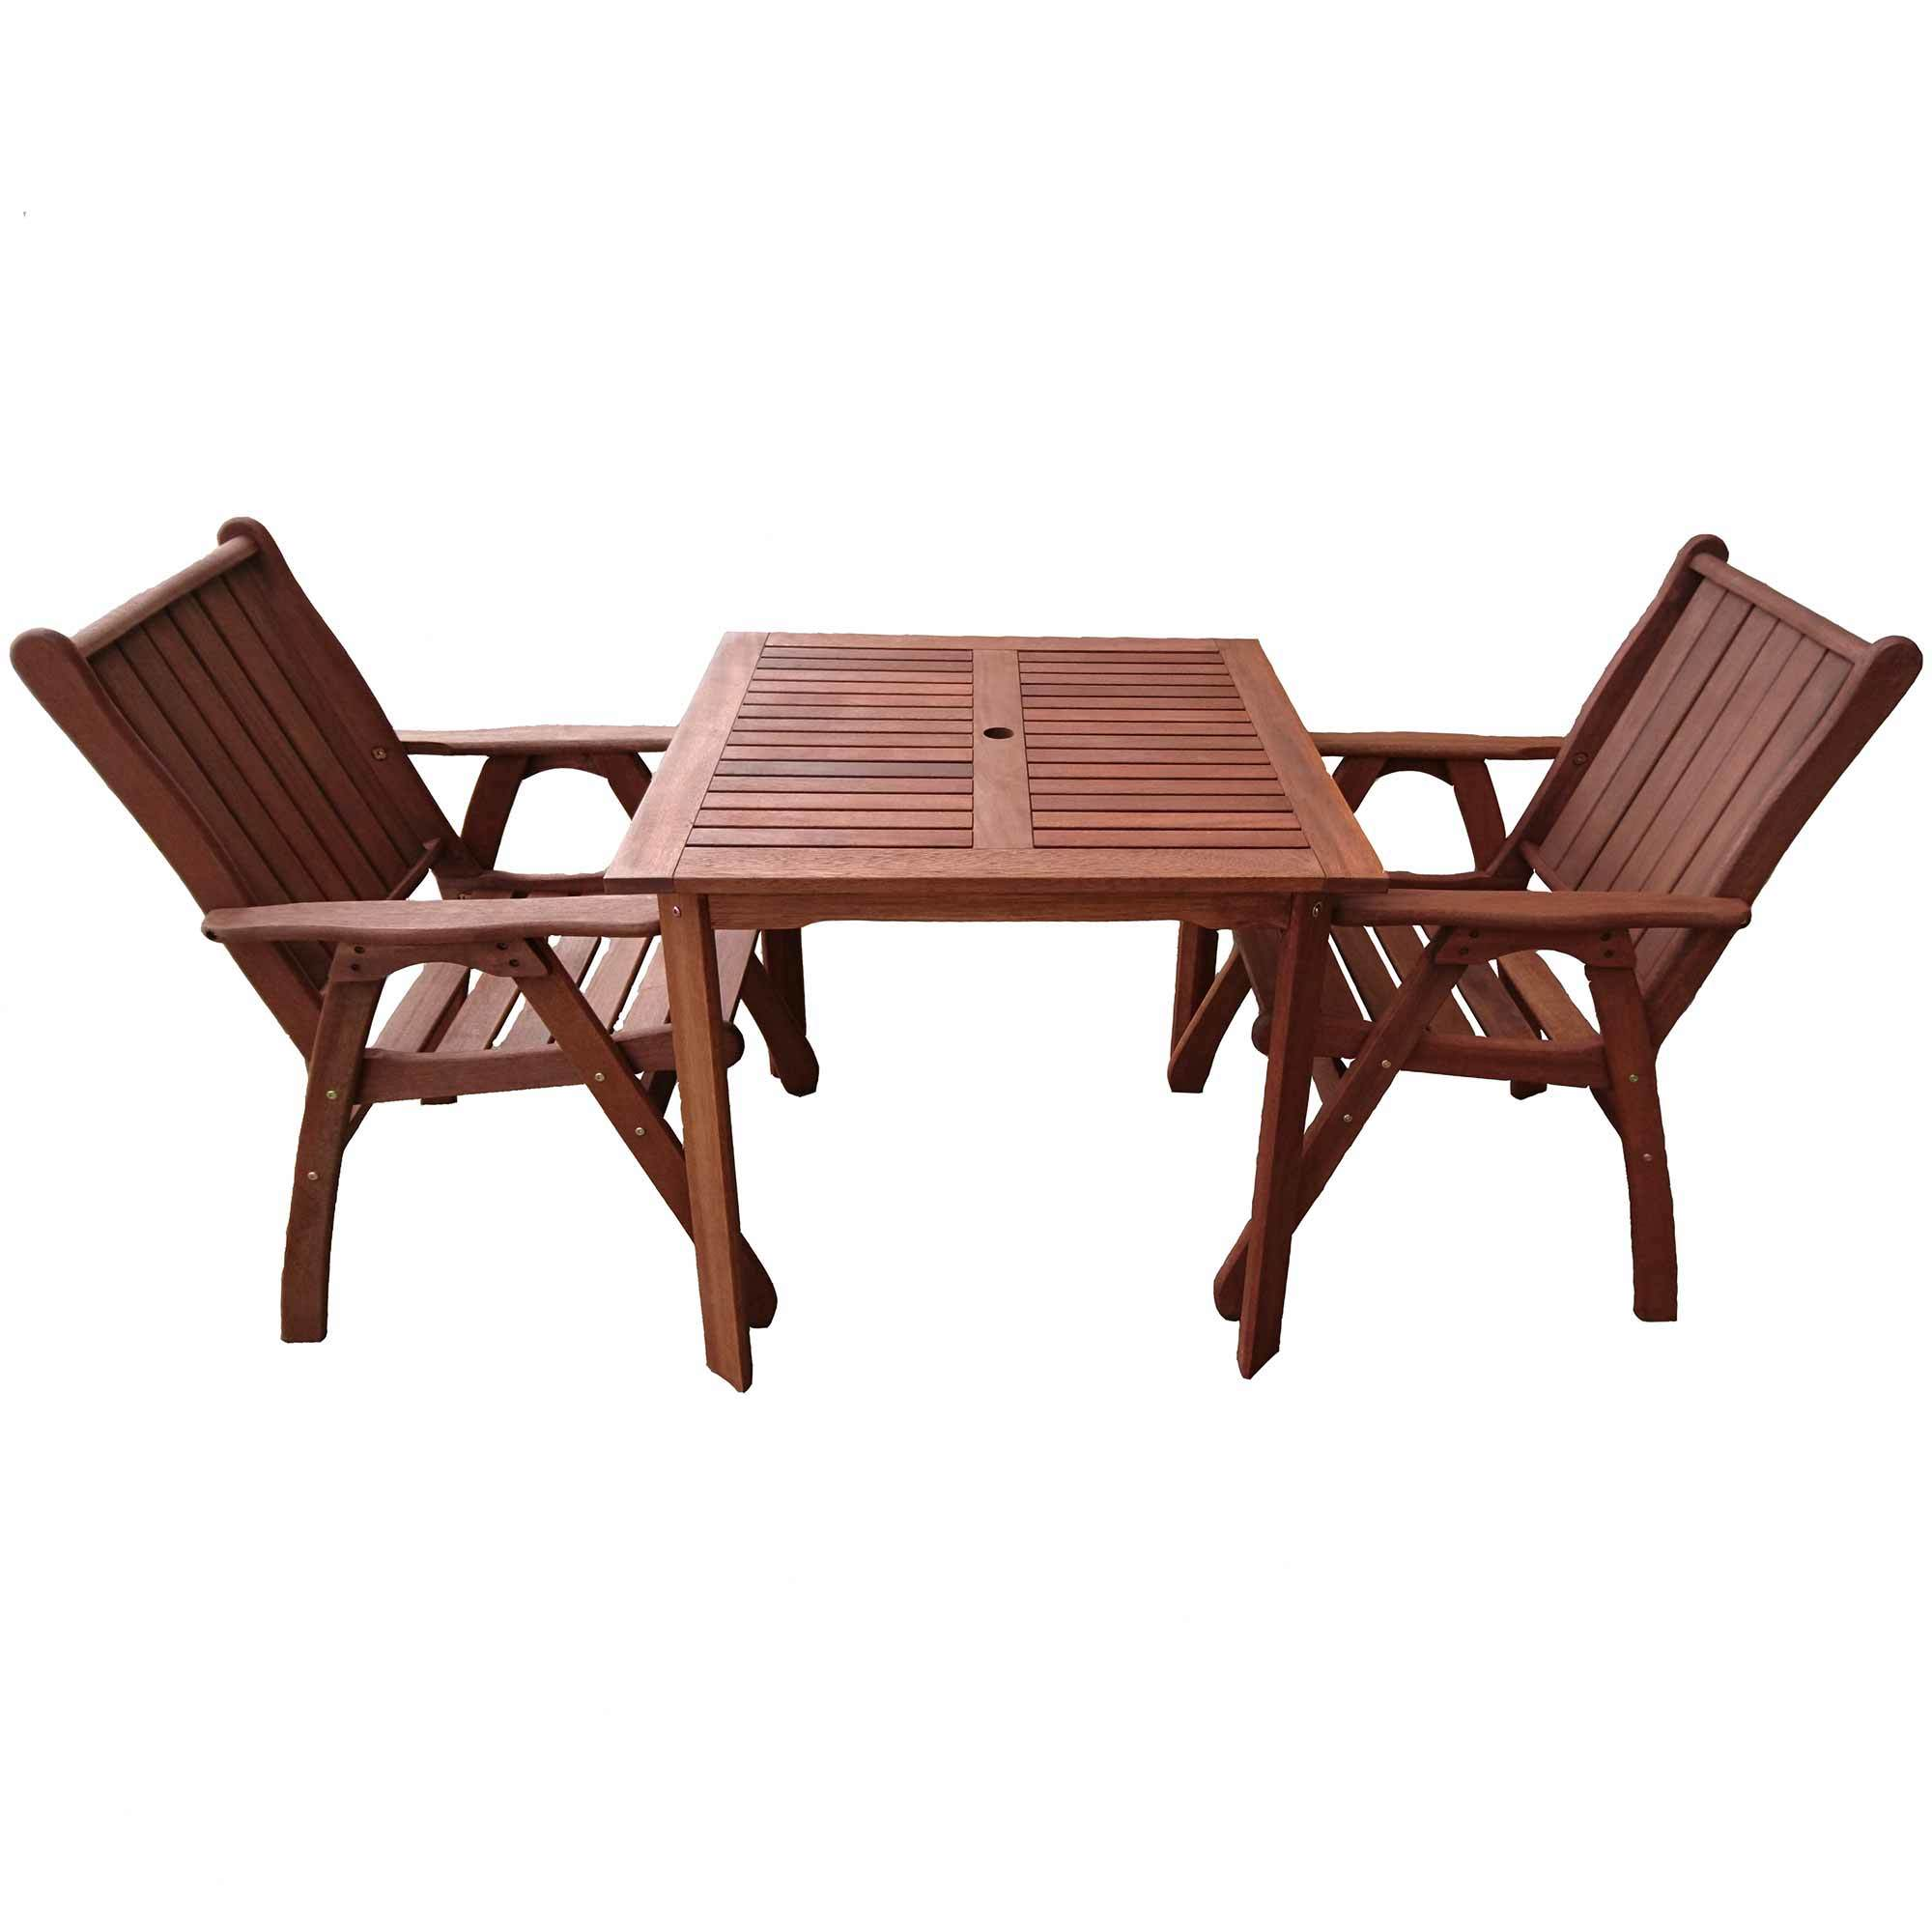 2 Seater Square Outdoor Dining Table Chairs Set Temple Webster